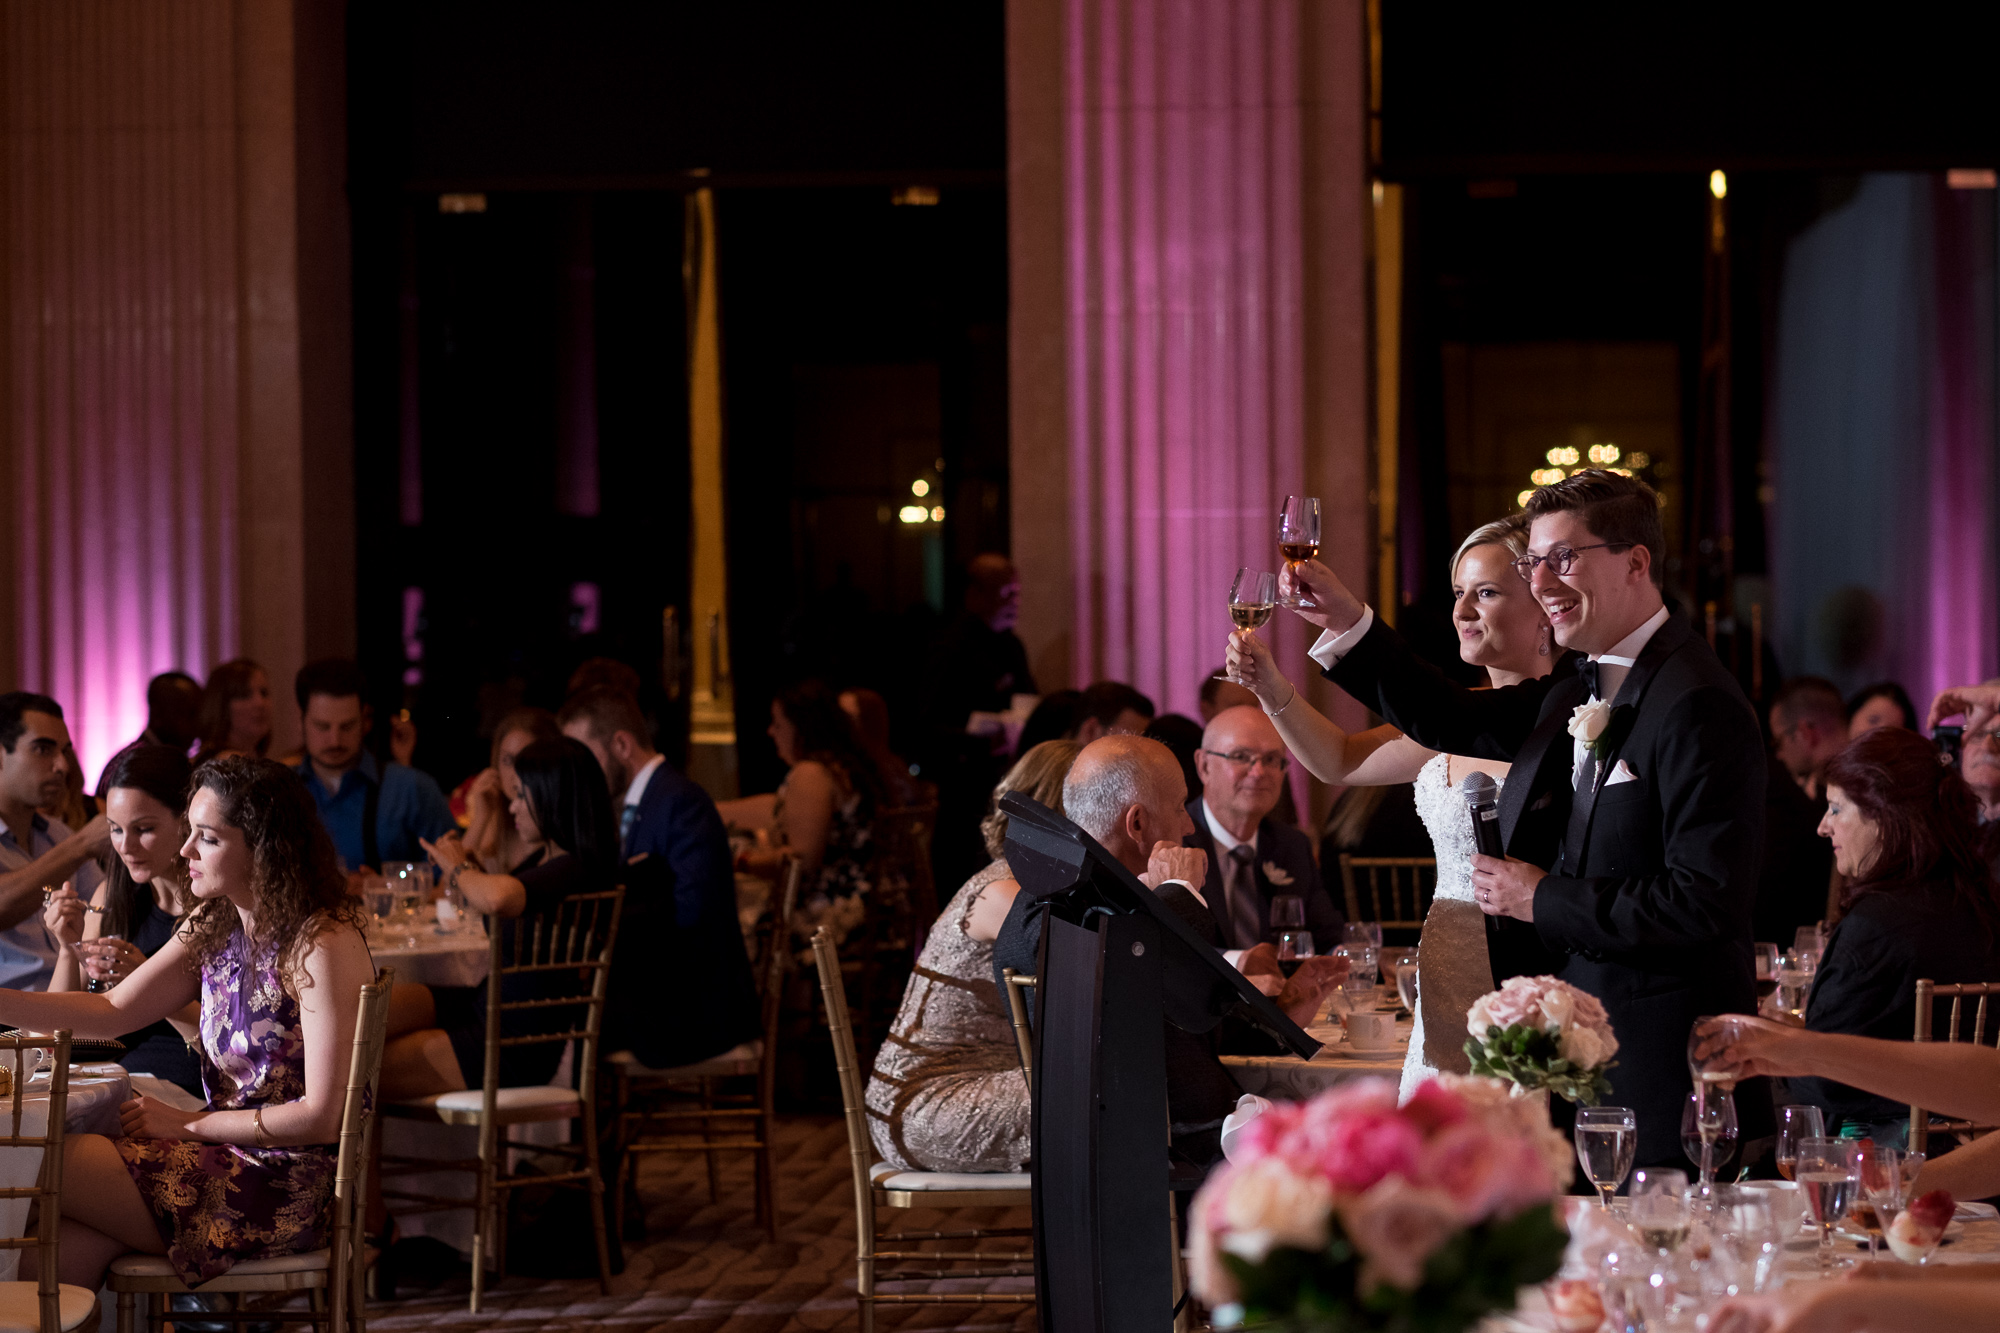 Danielle + Eric toast their guests during their speech at their wedding reception at the One King West Hotel in Toronto.